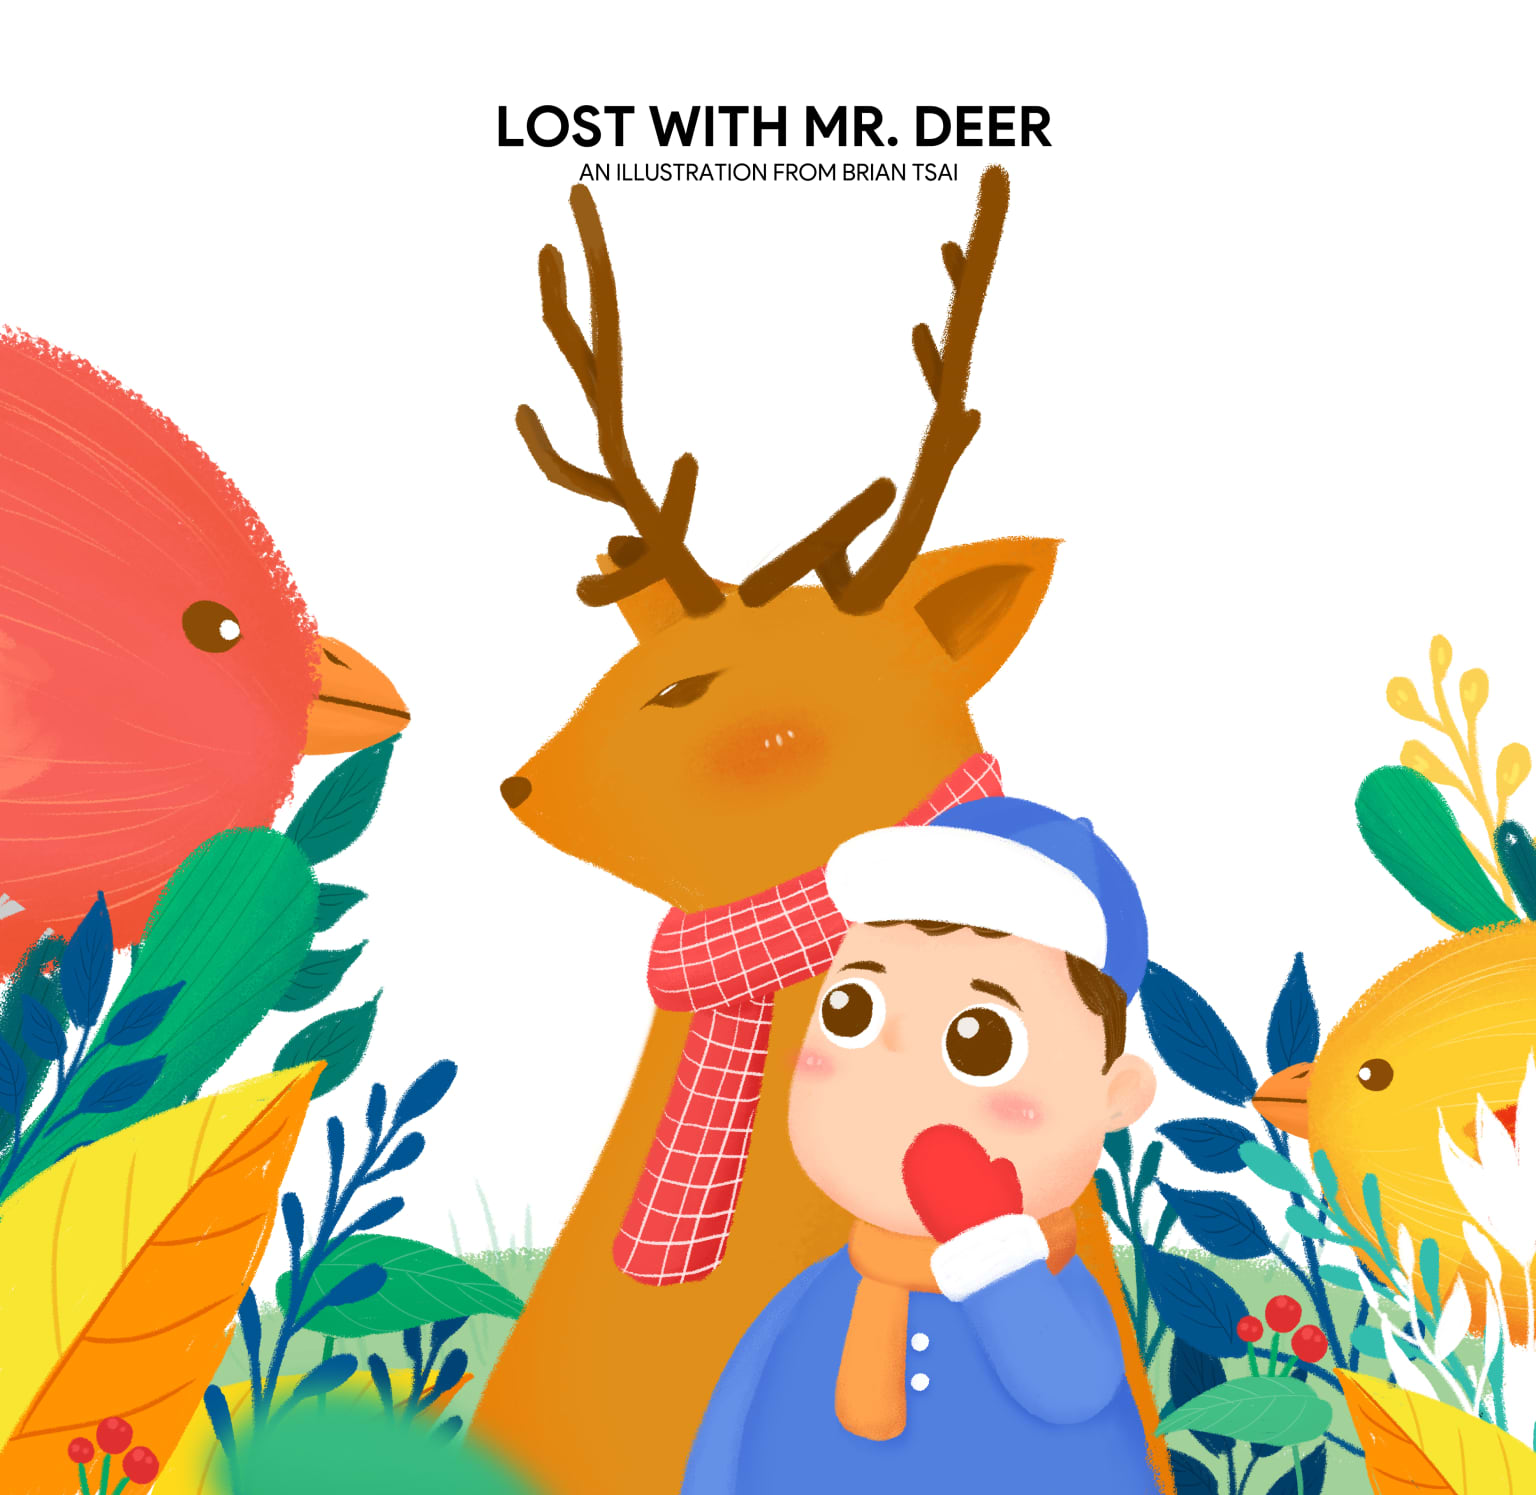 Lost with MR. deer